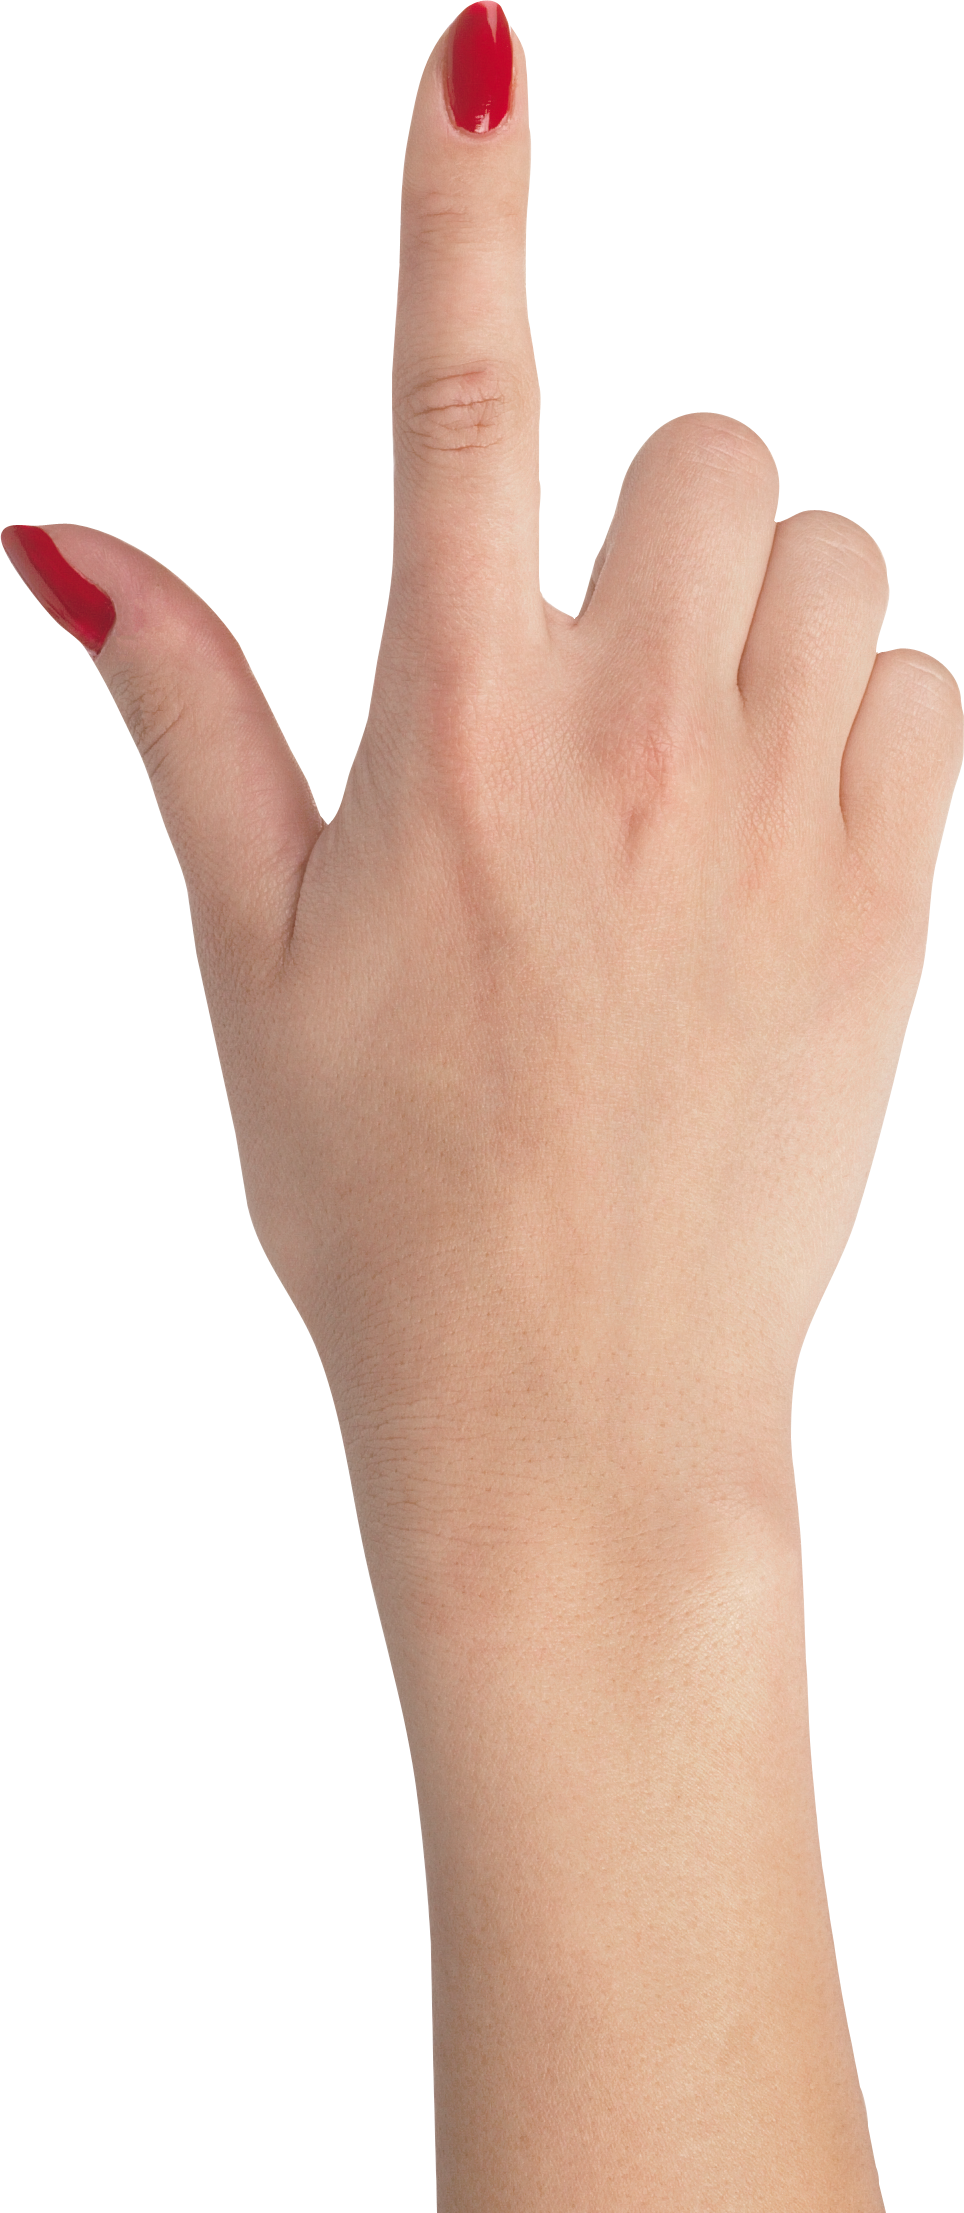 Woman hand png. Fingers images free download